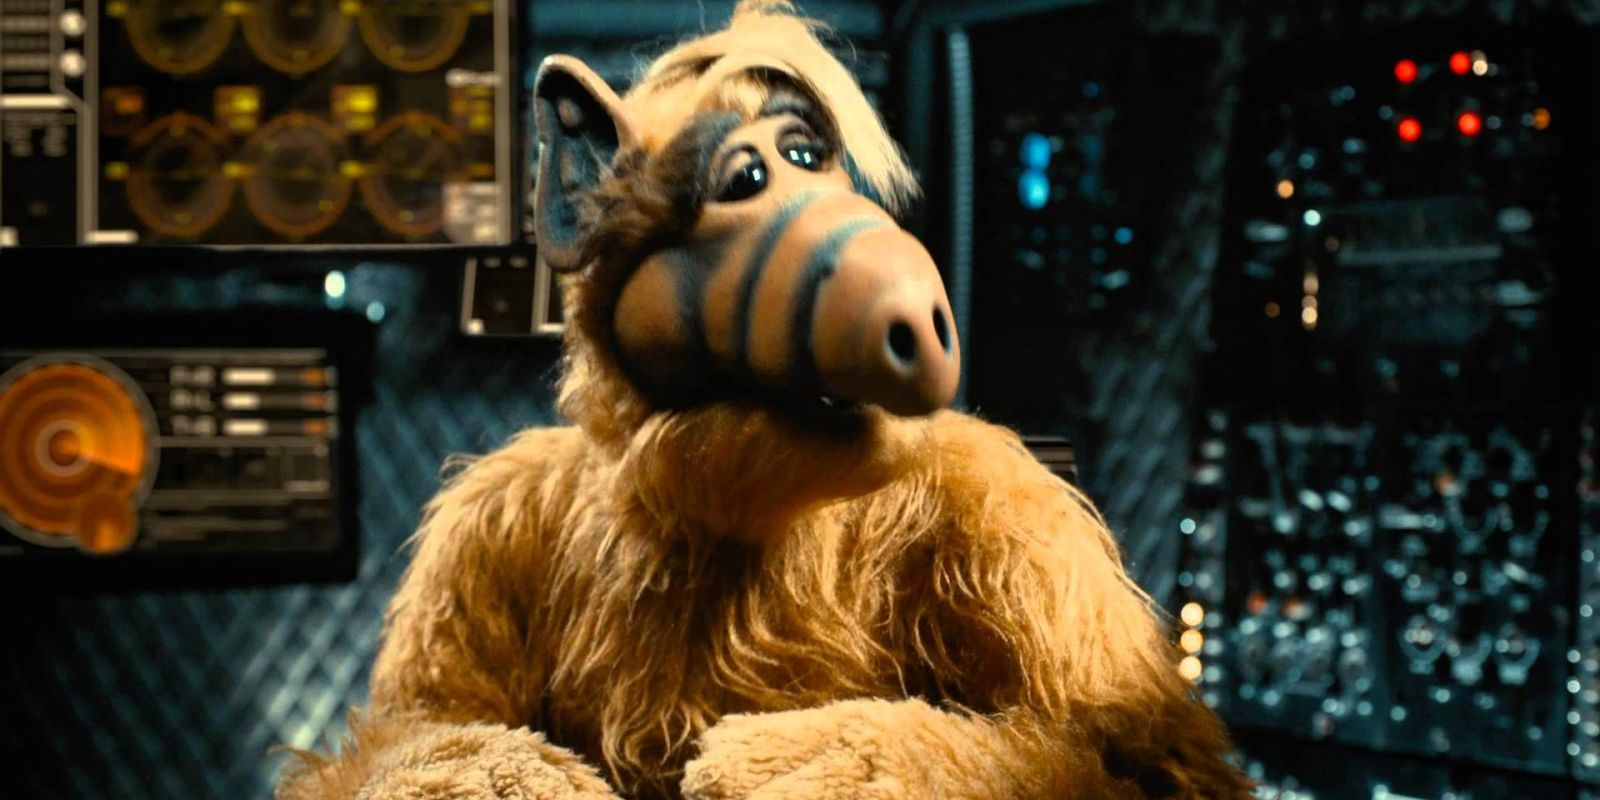 ALF is the latest '80s sitcom getting a reboot, so hide your pet cats now